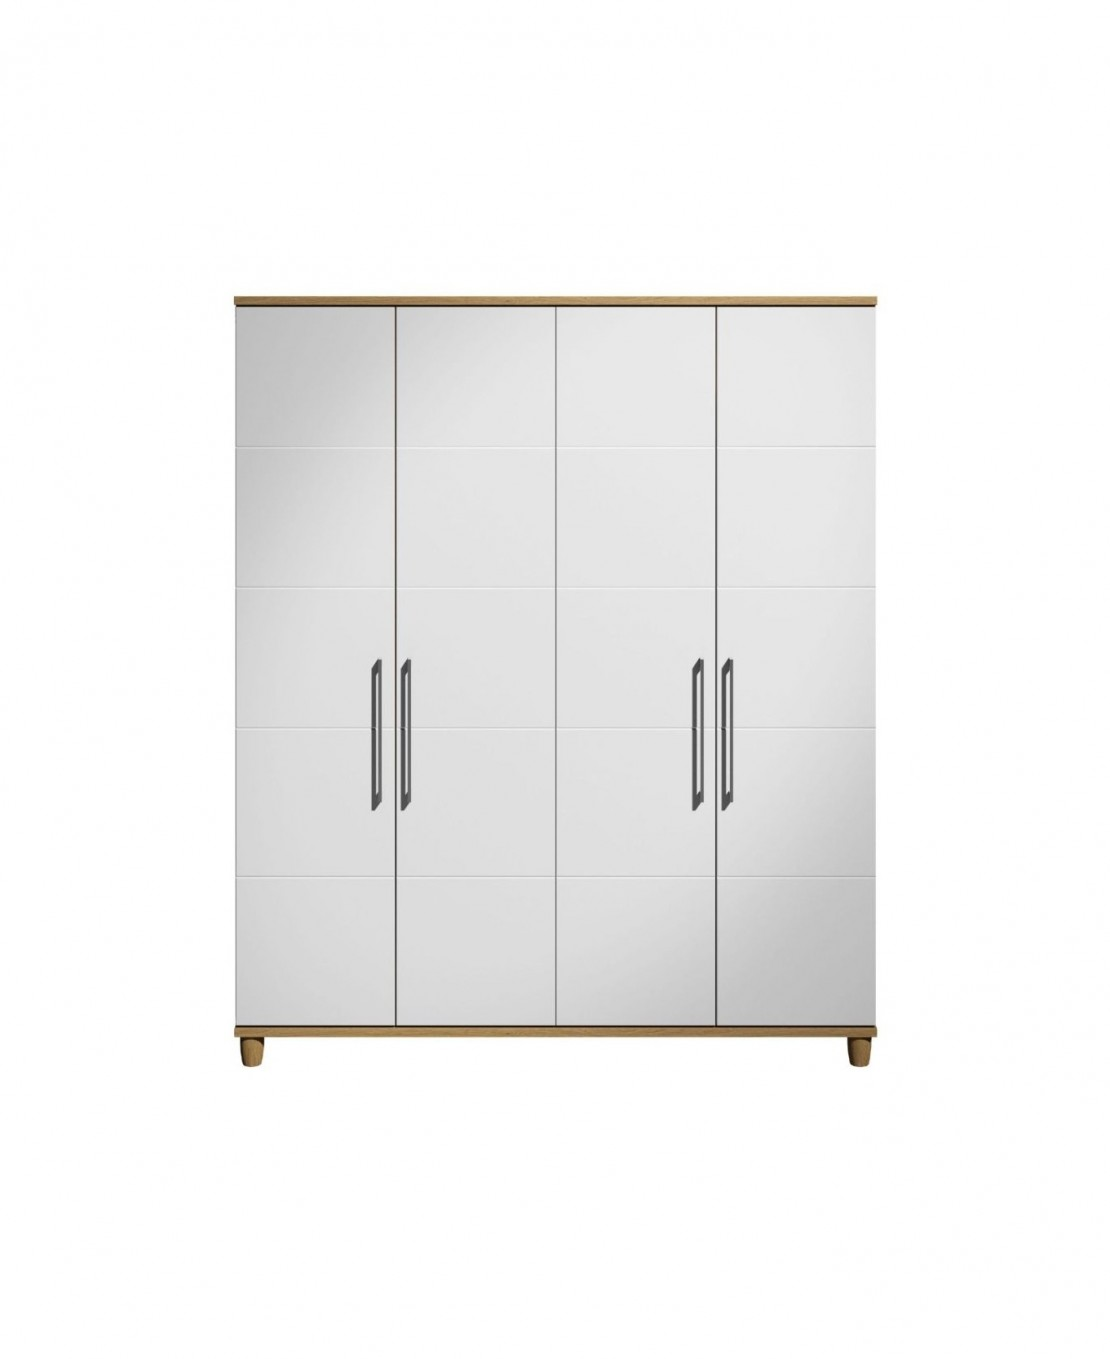 /_images/product-photos/kt-furniture-vardy-4-door-robe-white-a.jpg